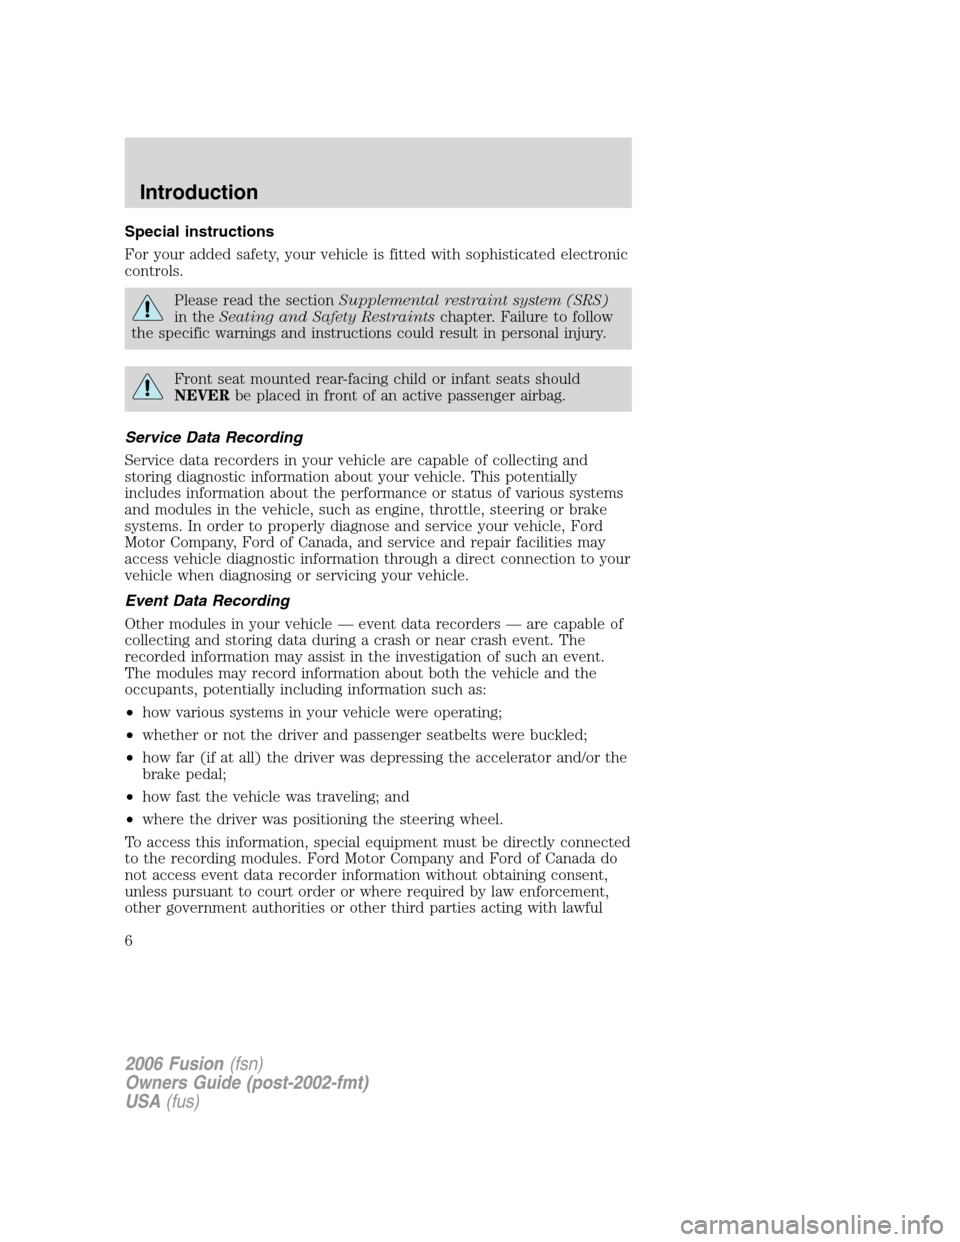 FORD FUSION (AMERICAS) 2006 1.G Owners Manual, Page 6